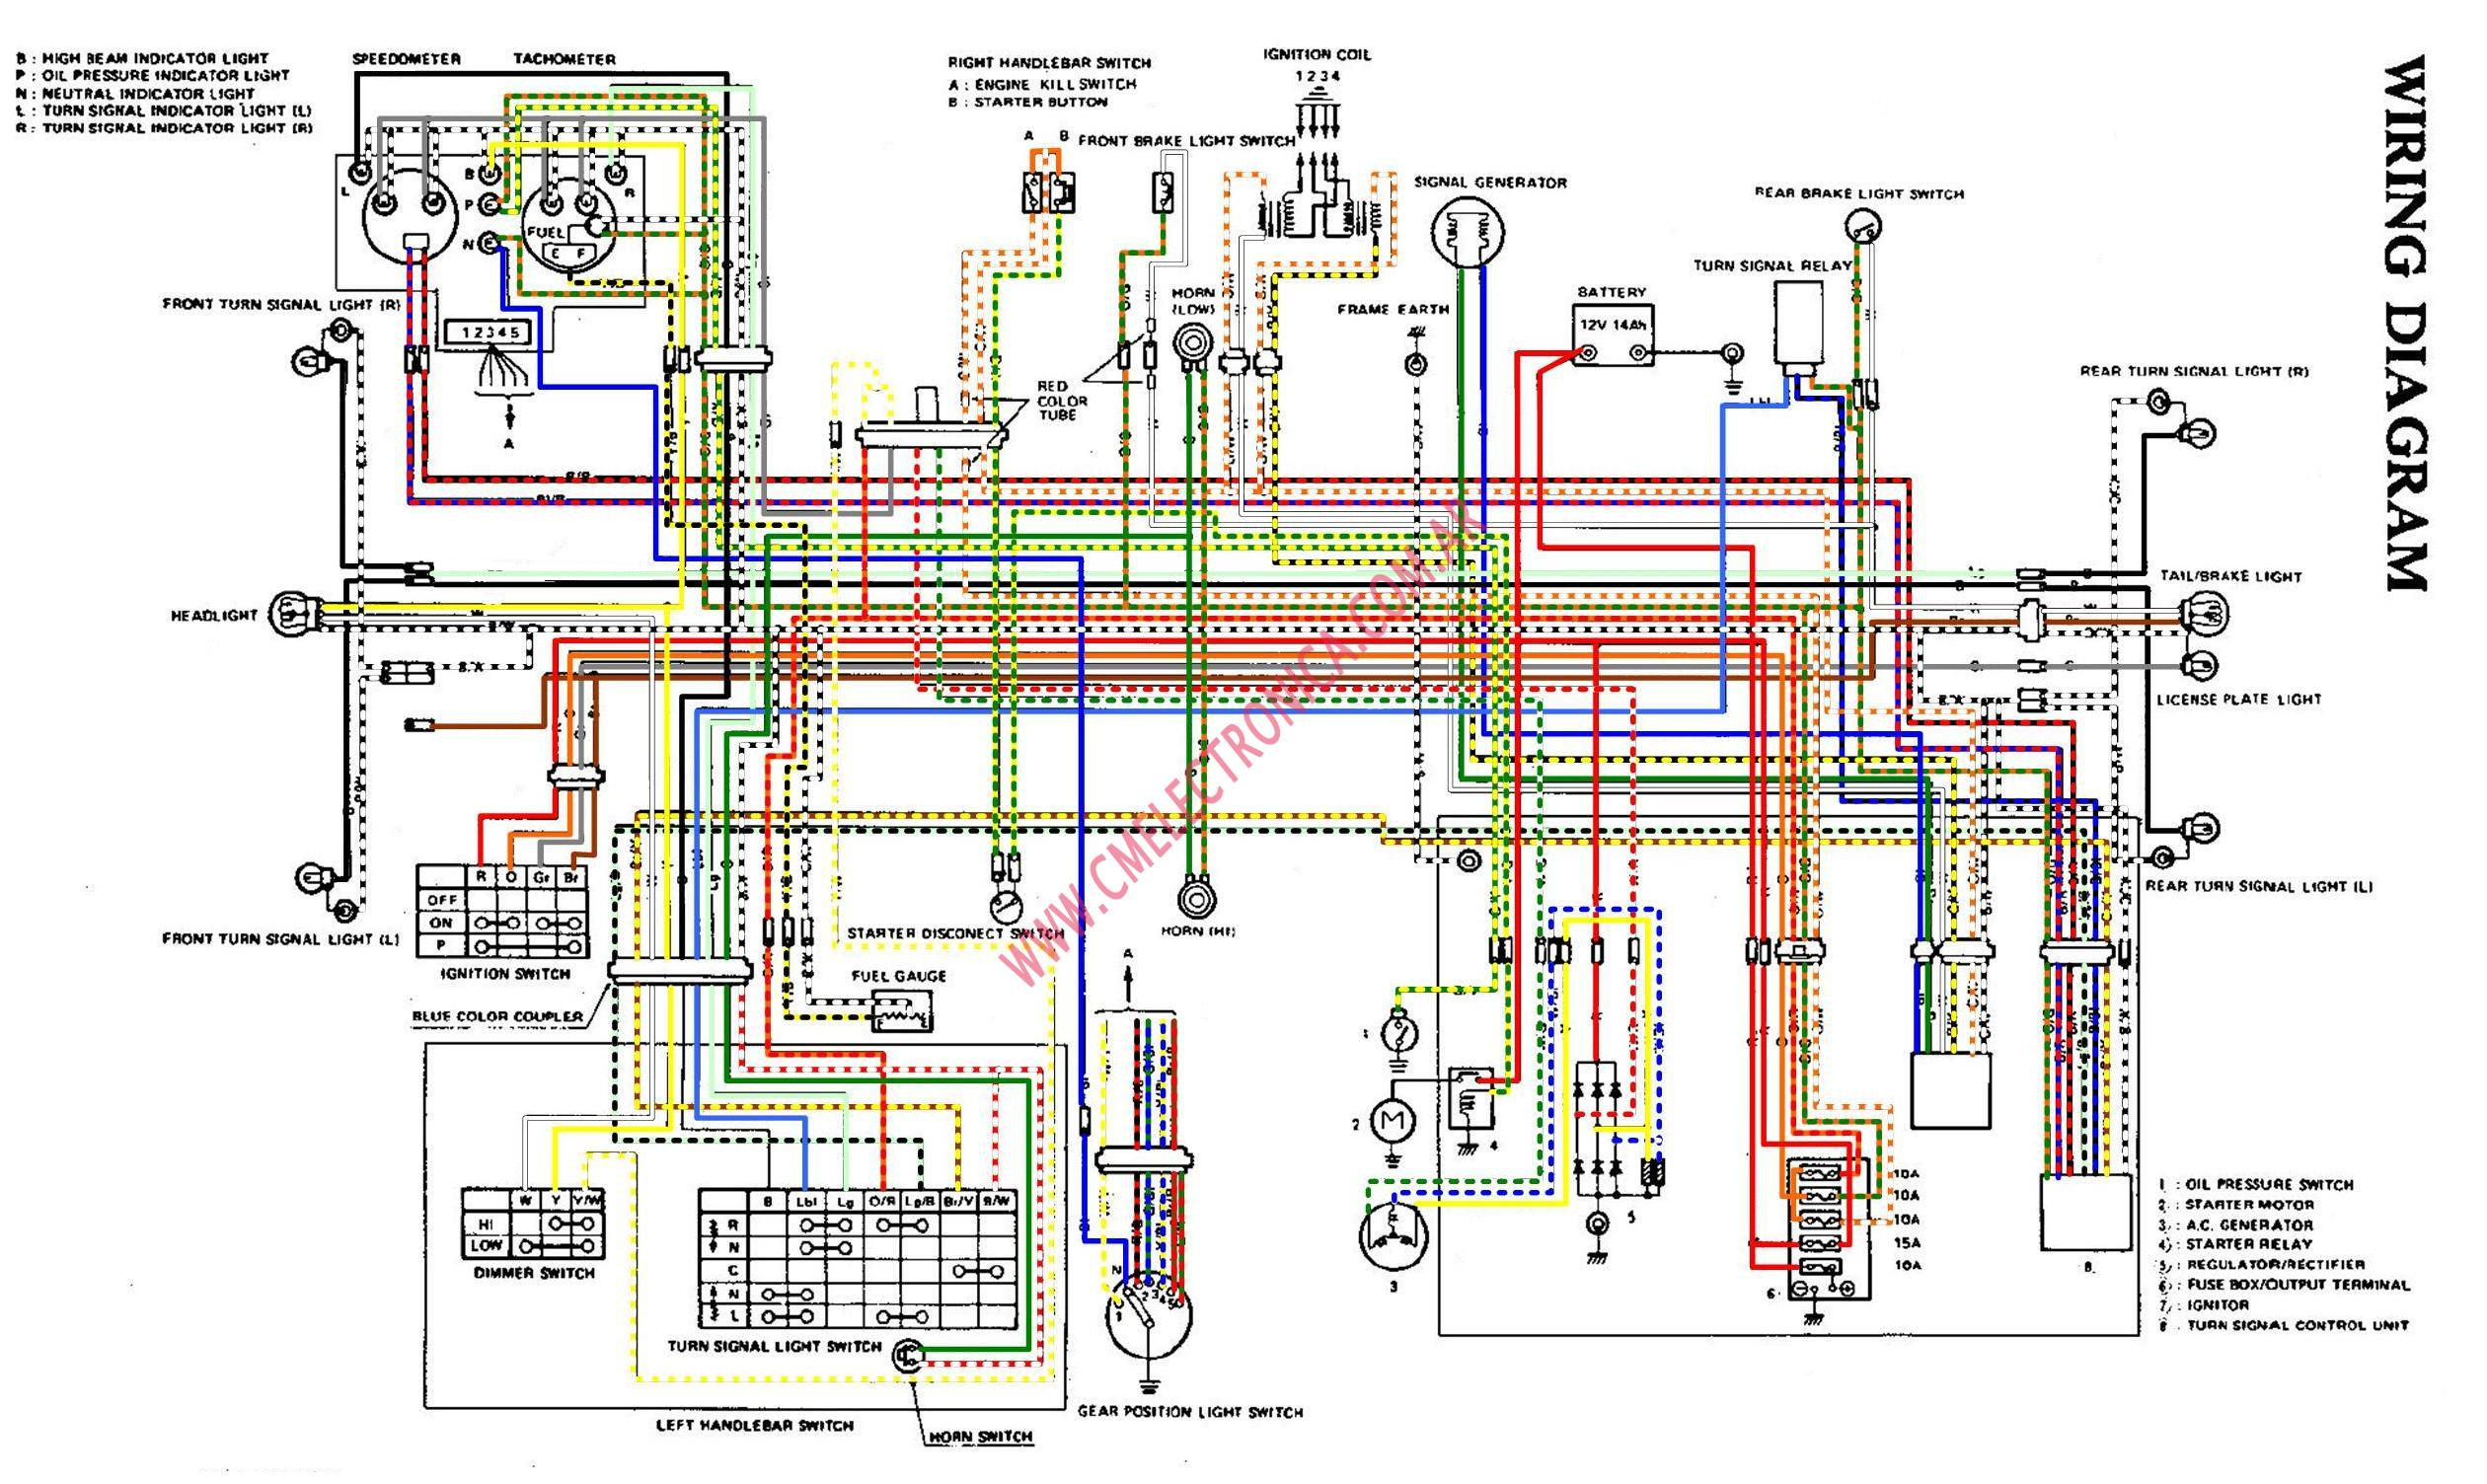 suzuki gs400 wiring diagram - 2006 ford f 150 air conditioning wiring  diagram - hyundaiii.tukune.jeanjaures37.fr  wiring diagram resource